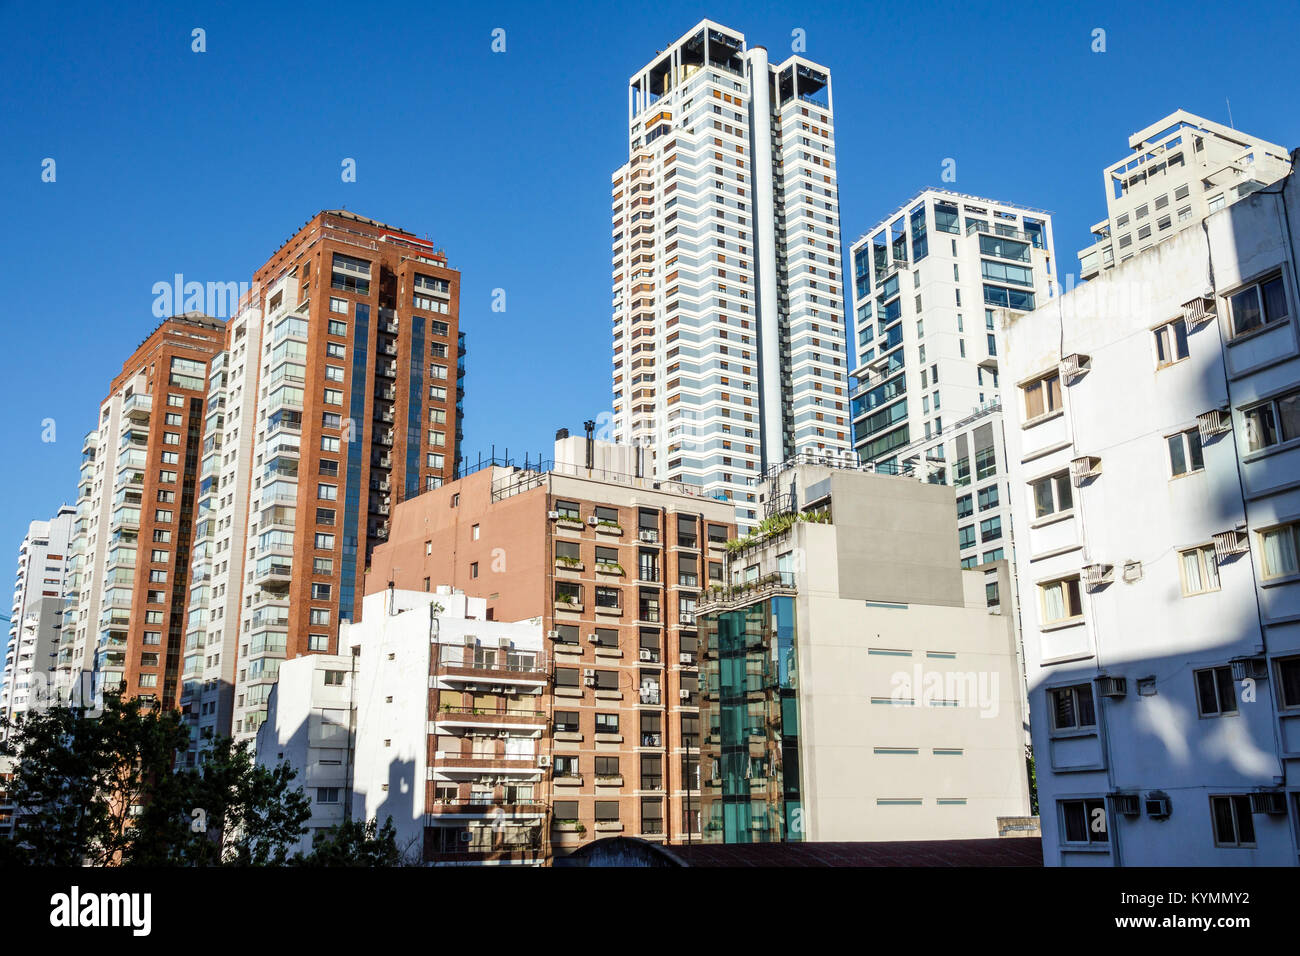 Buenos Aires Argentina,Palermo,city skyline,view,apartment building,architecture,high rise rises skyscraper skyscrapers building buildings tower tower Stock Photo